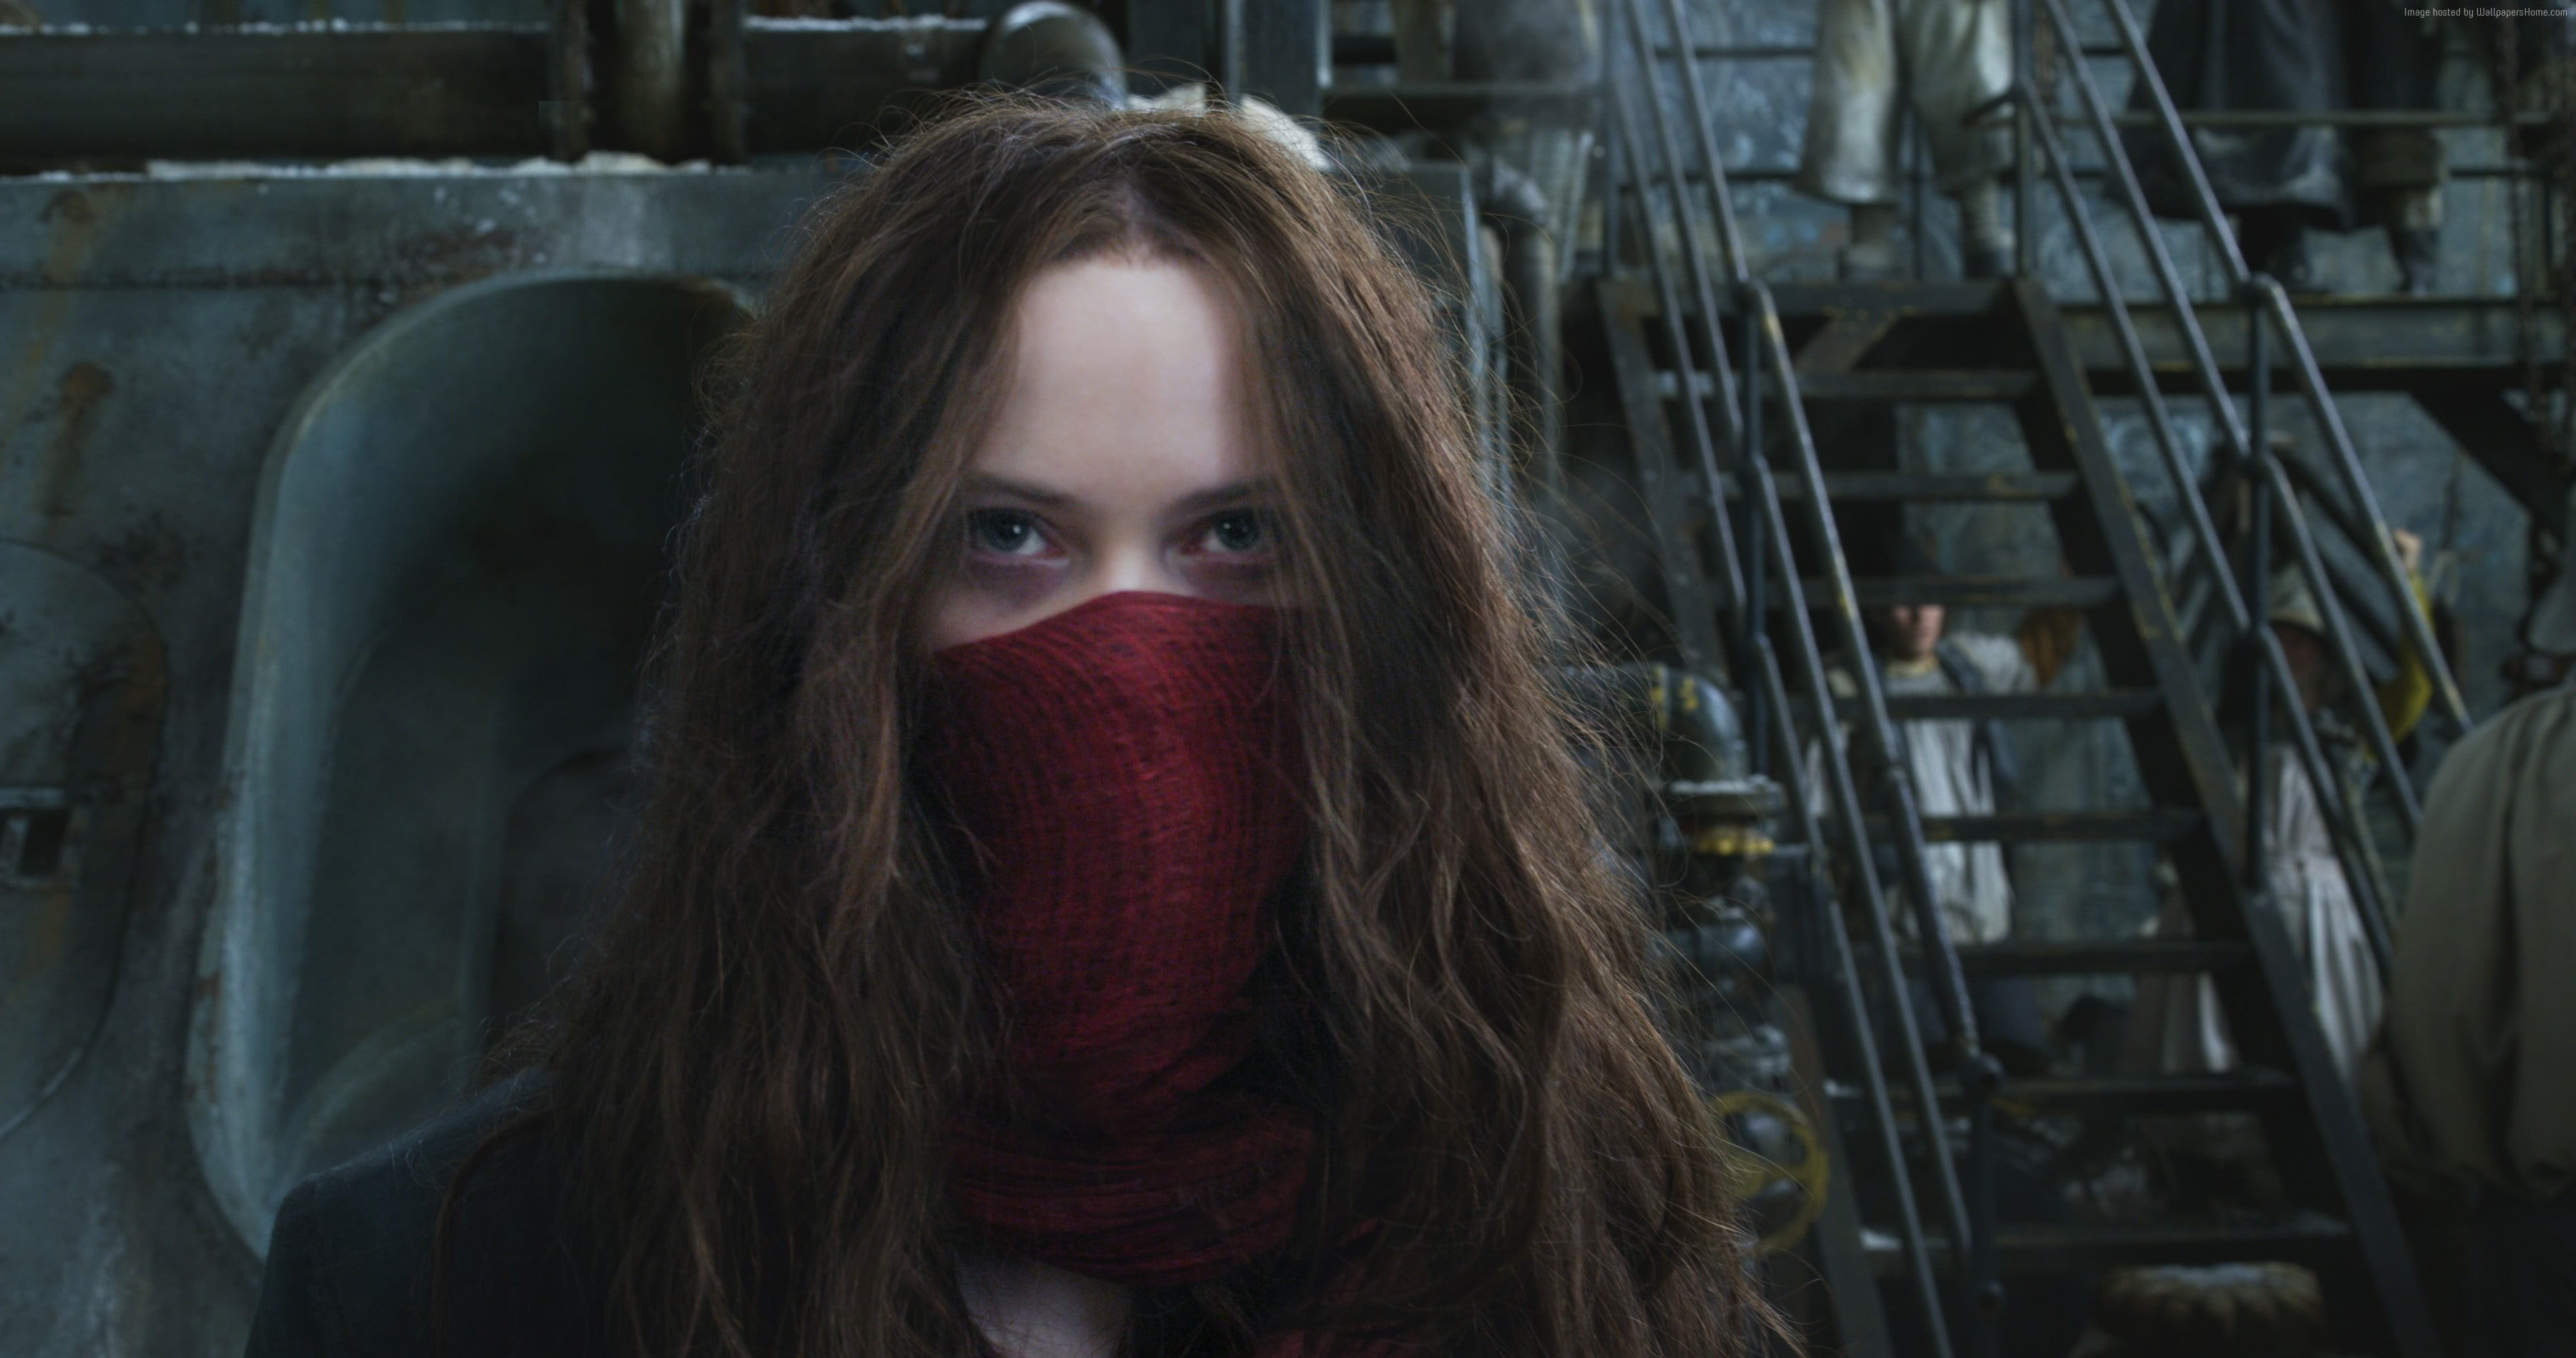 Res: 3600x1898, women's red bandana, Mortal Engines, Hera Hilmar, 4k HD wallpaper